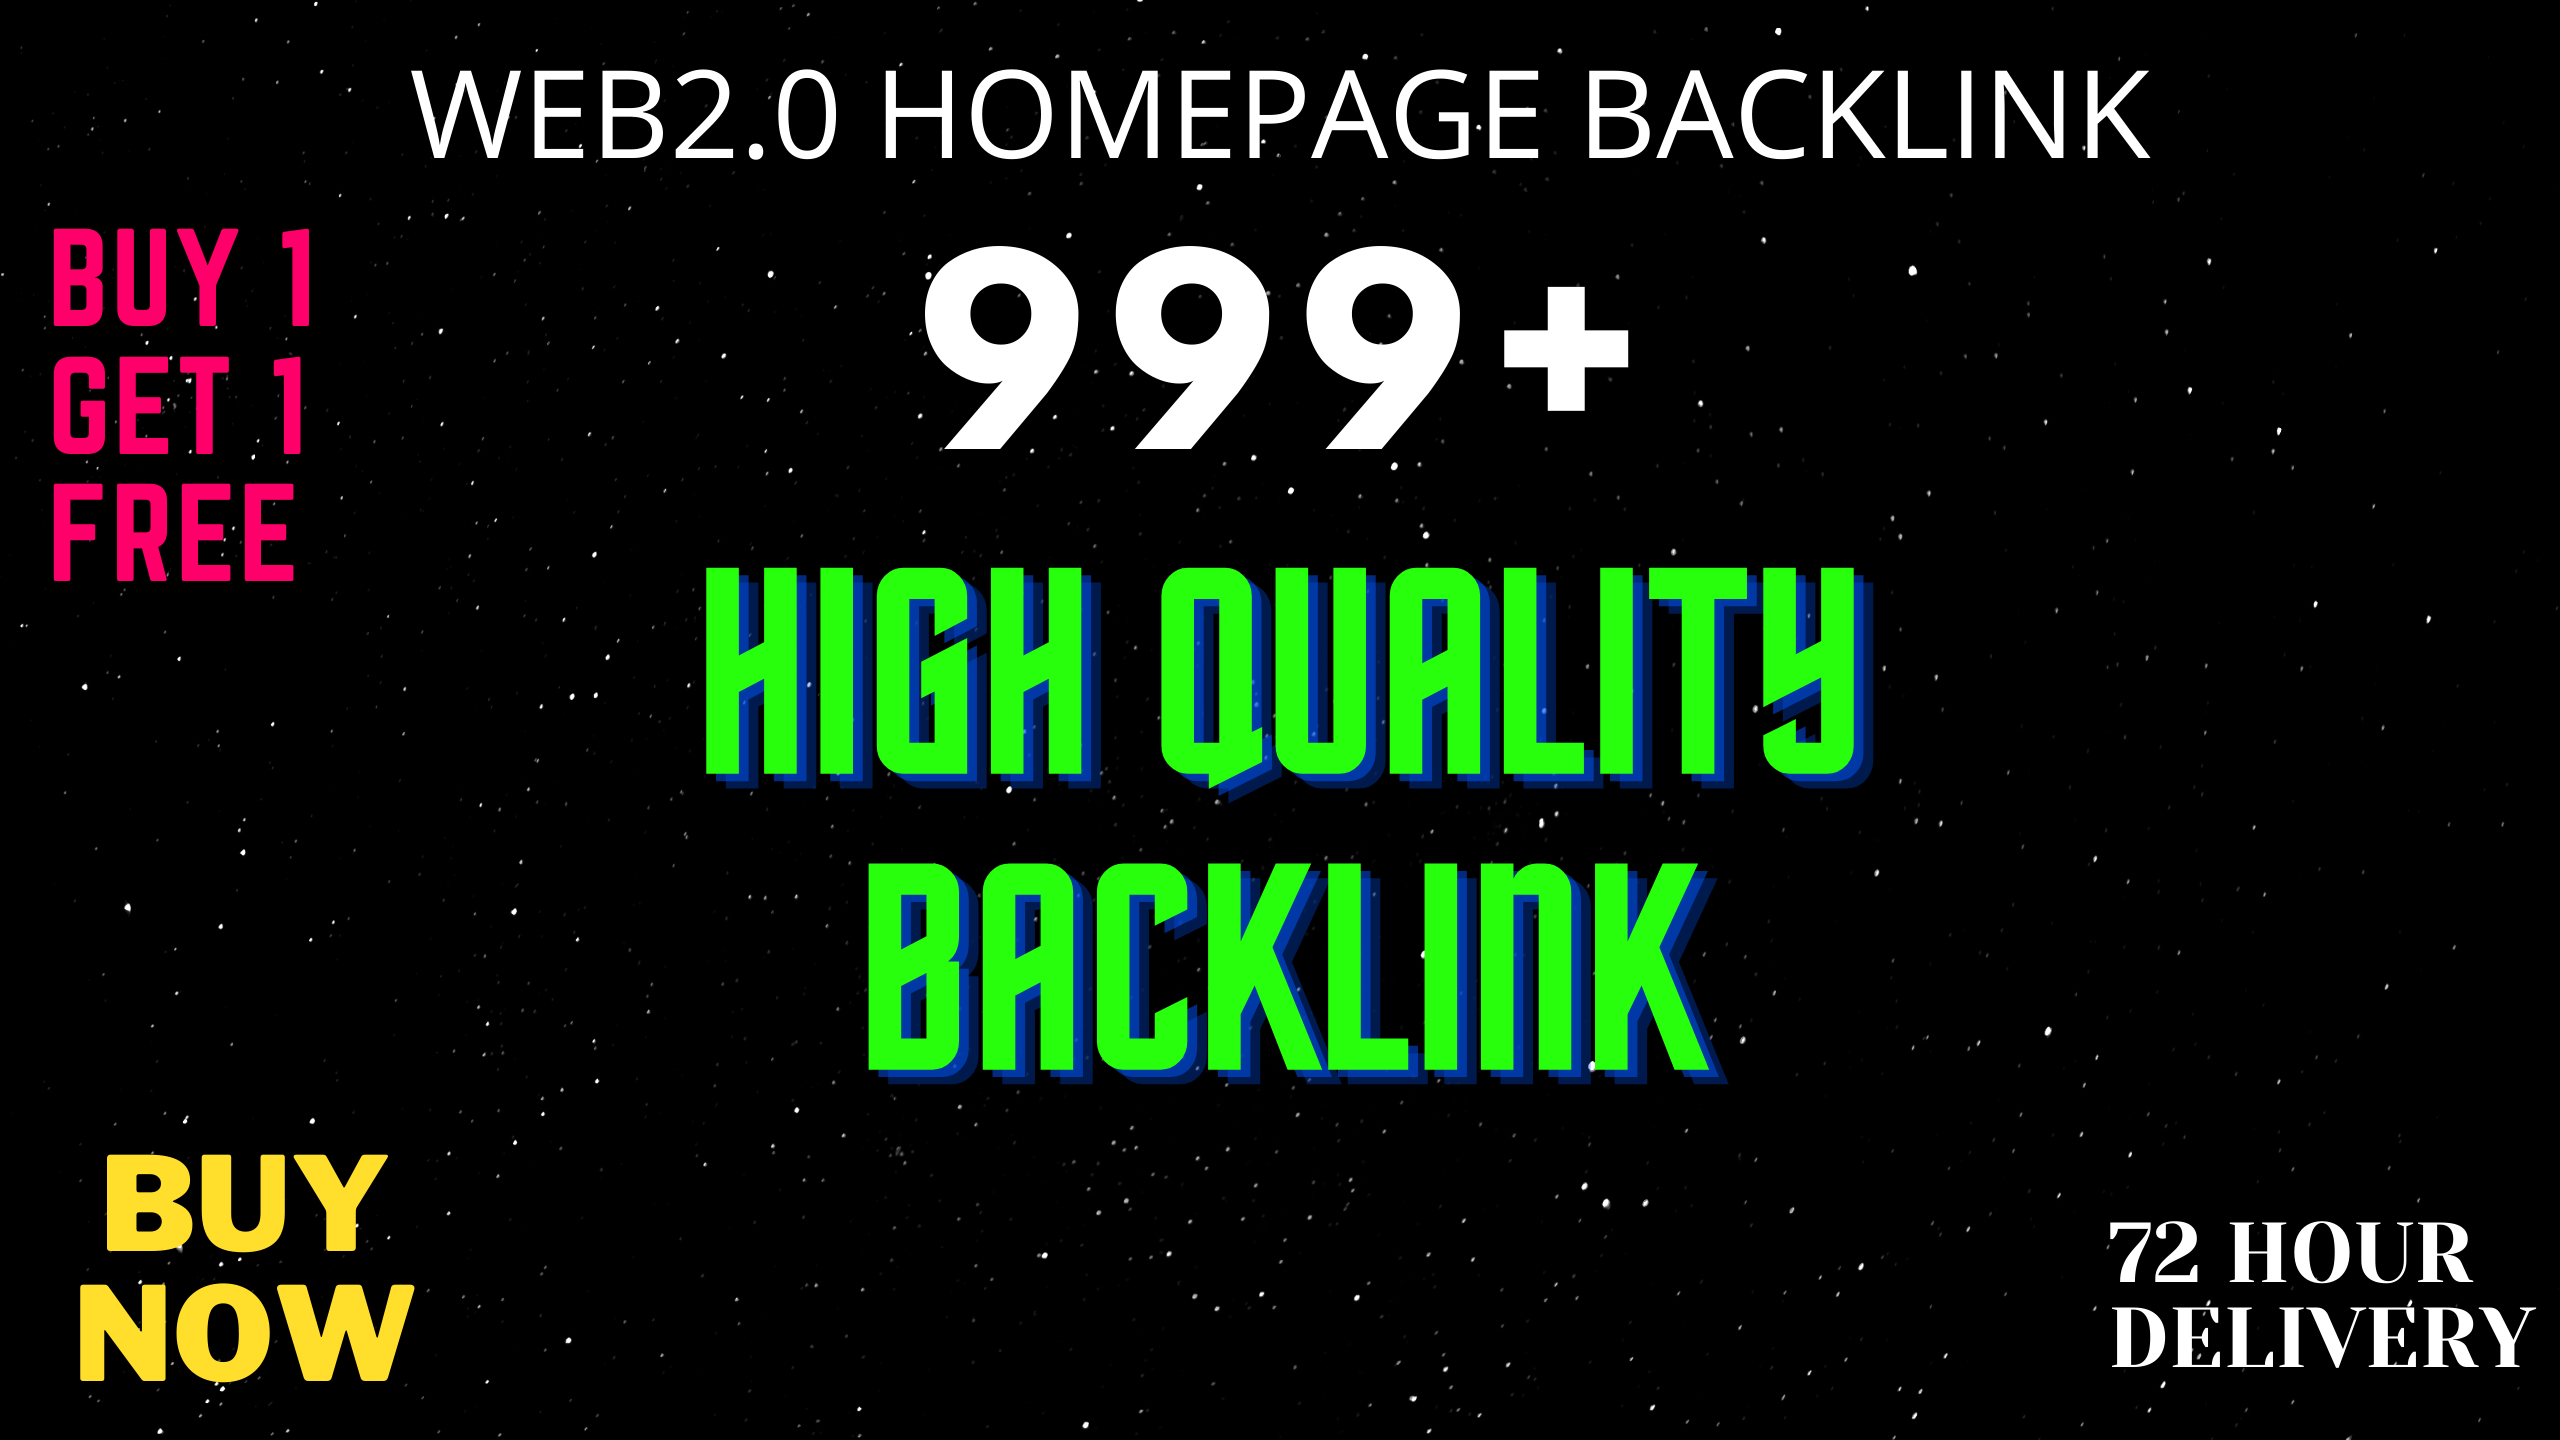 I Will Provide DA50+ PA40+ DR50+ 999+Homepage web2.0 Backlink Permanent Dofollow With unique website